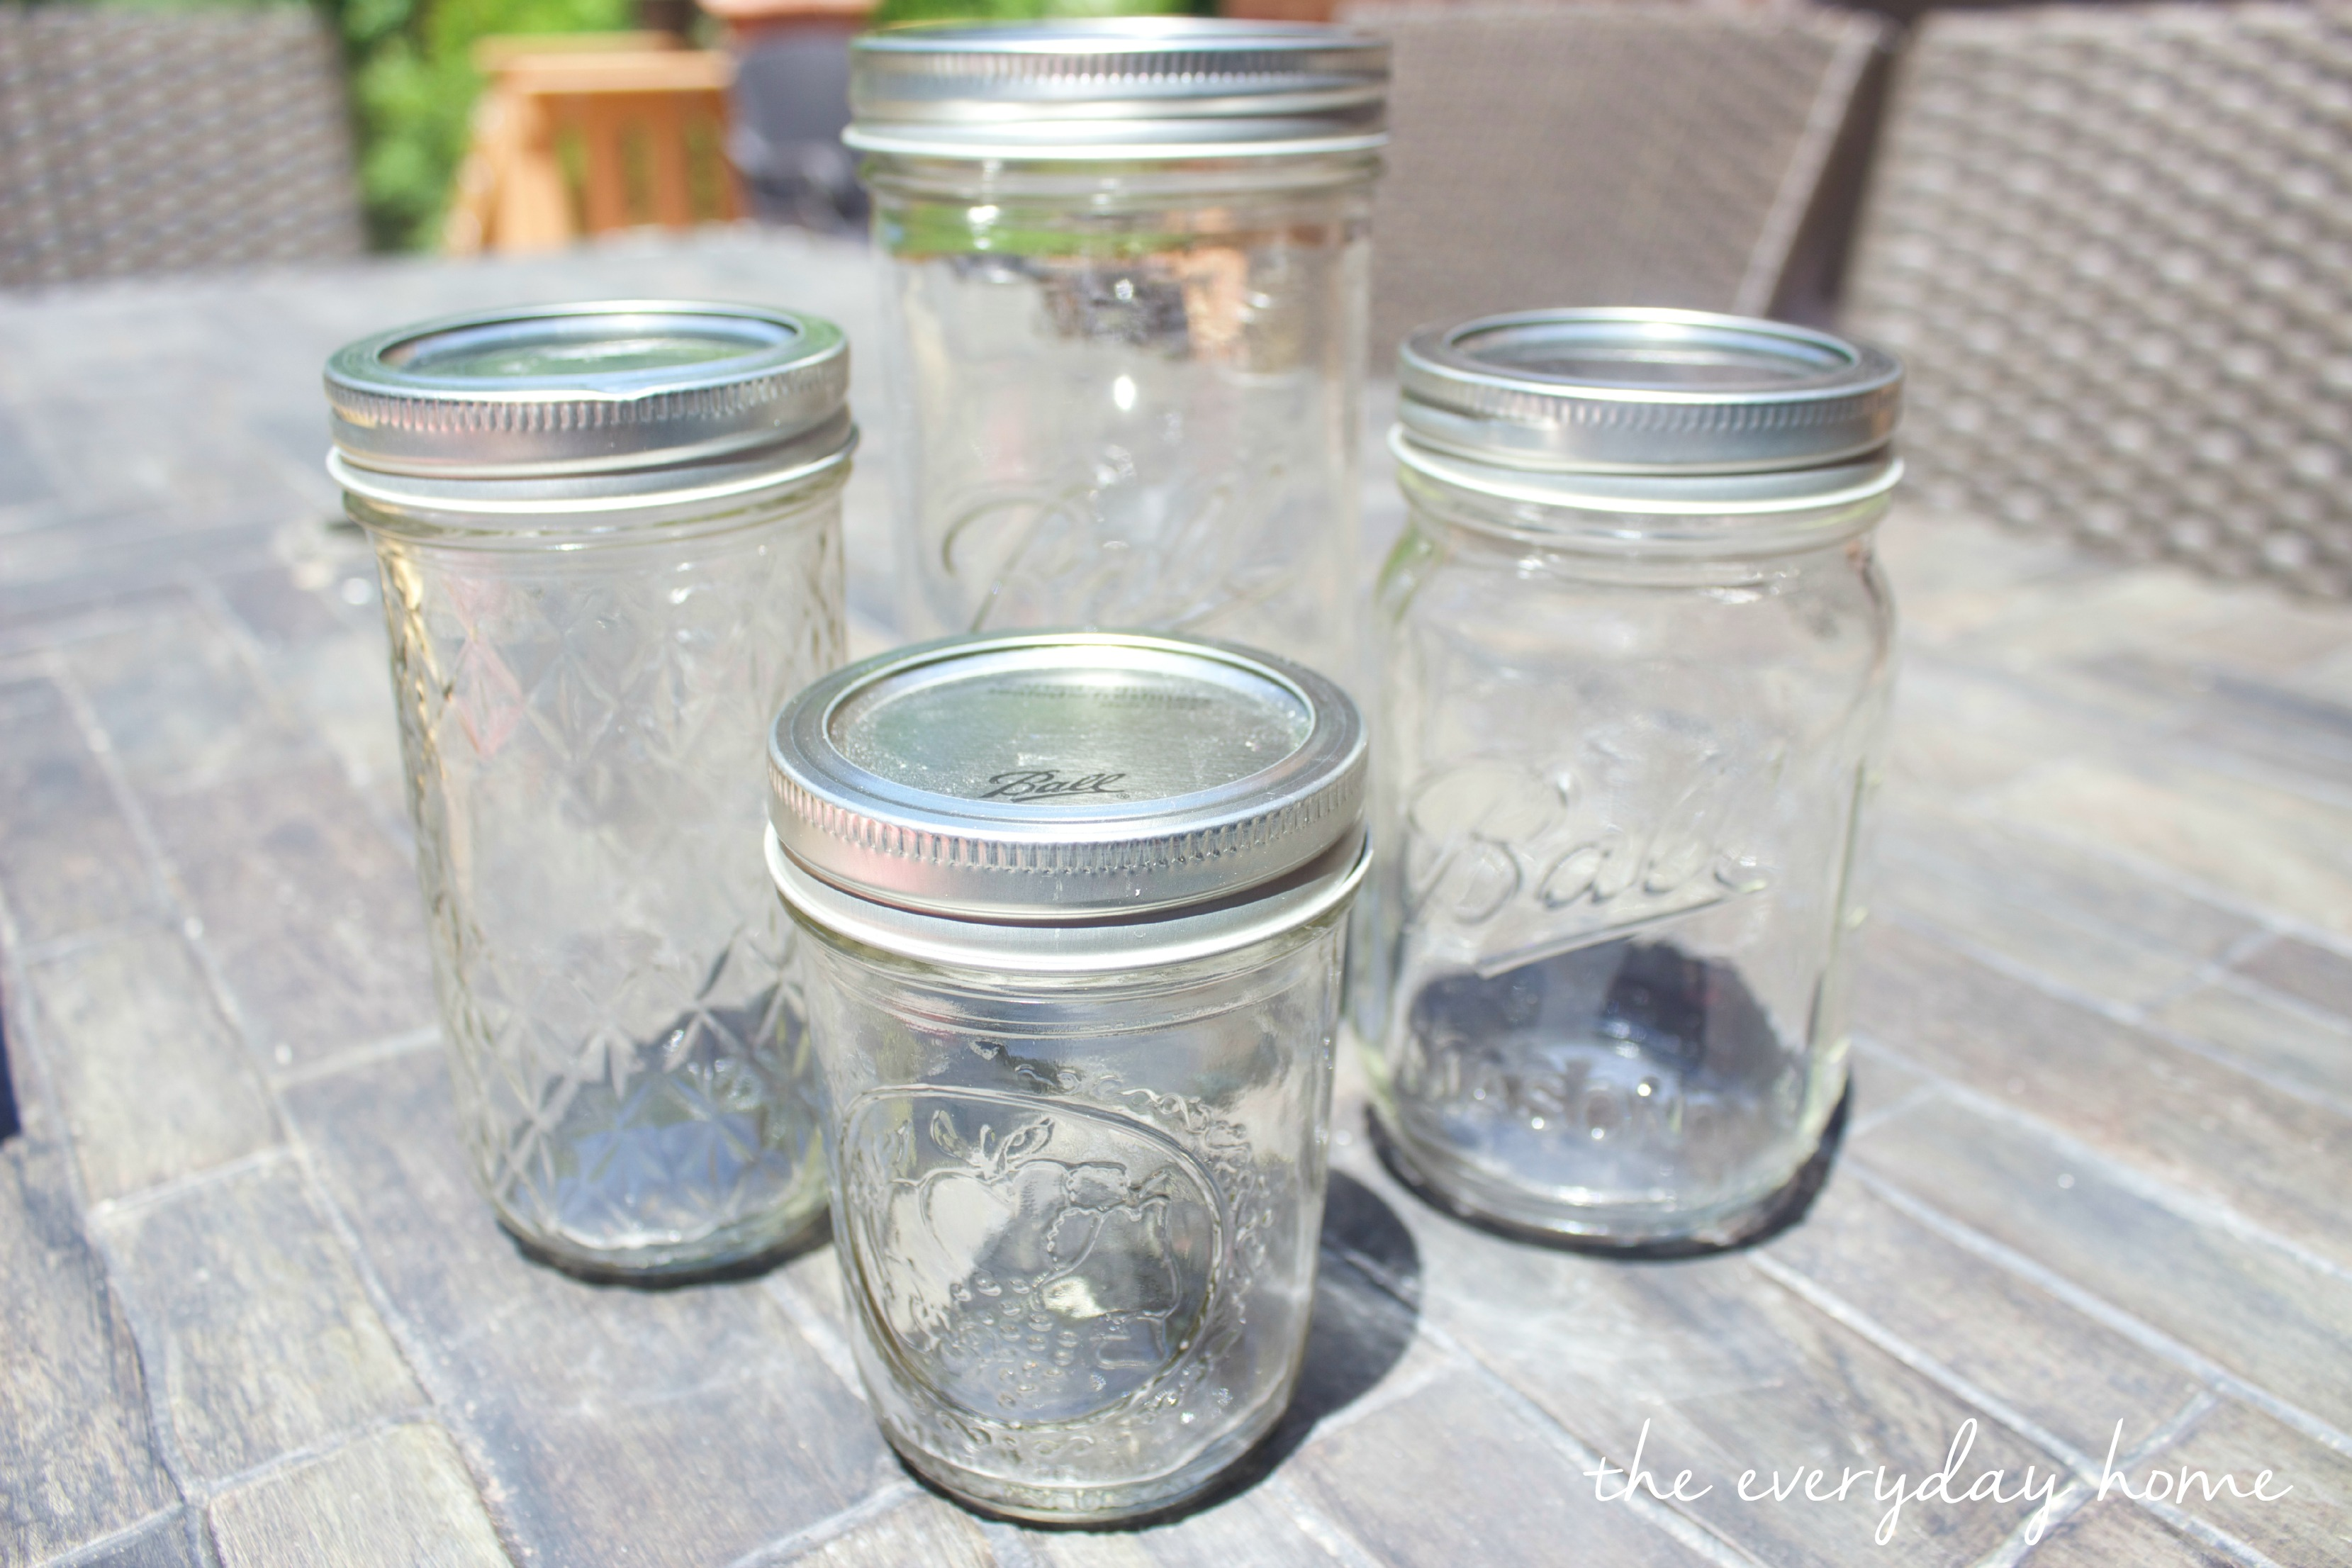 DIY Citronella Mason Jar Candles The Everyday Home Blog www.everydayhomeblog.com (2)